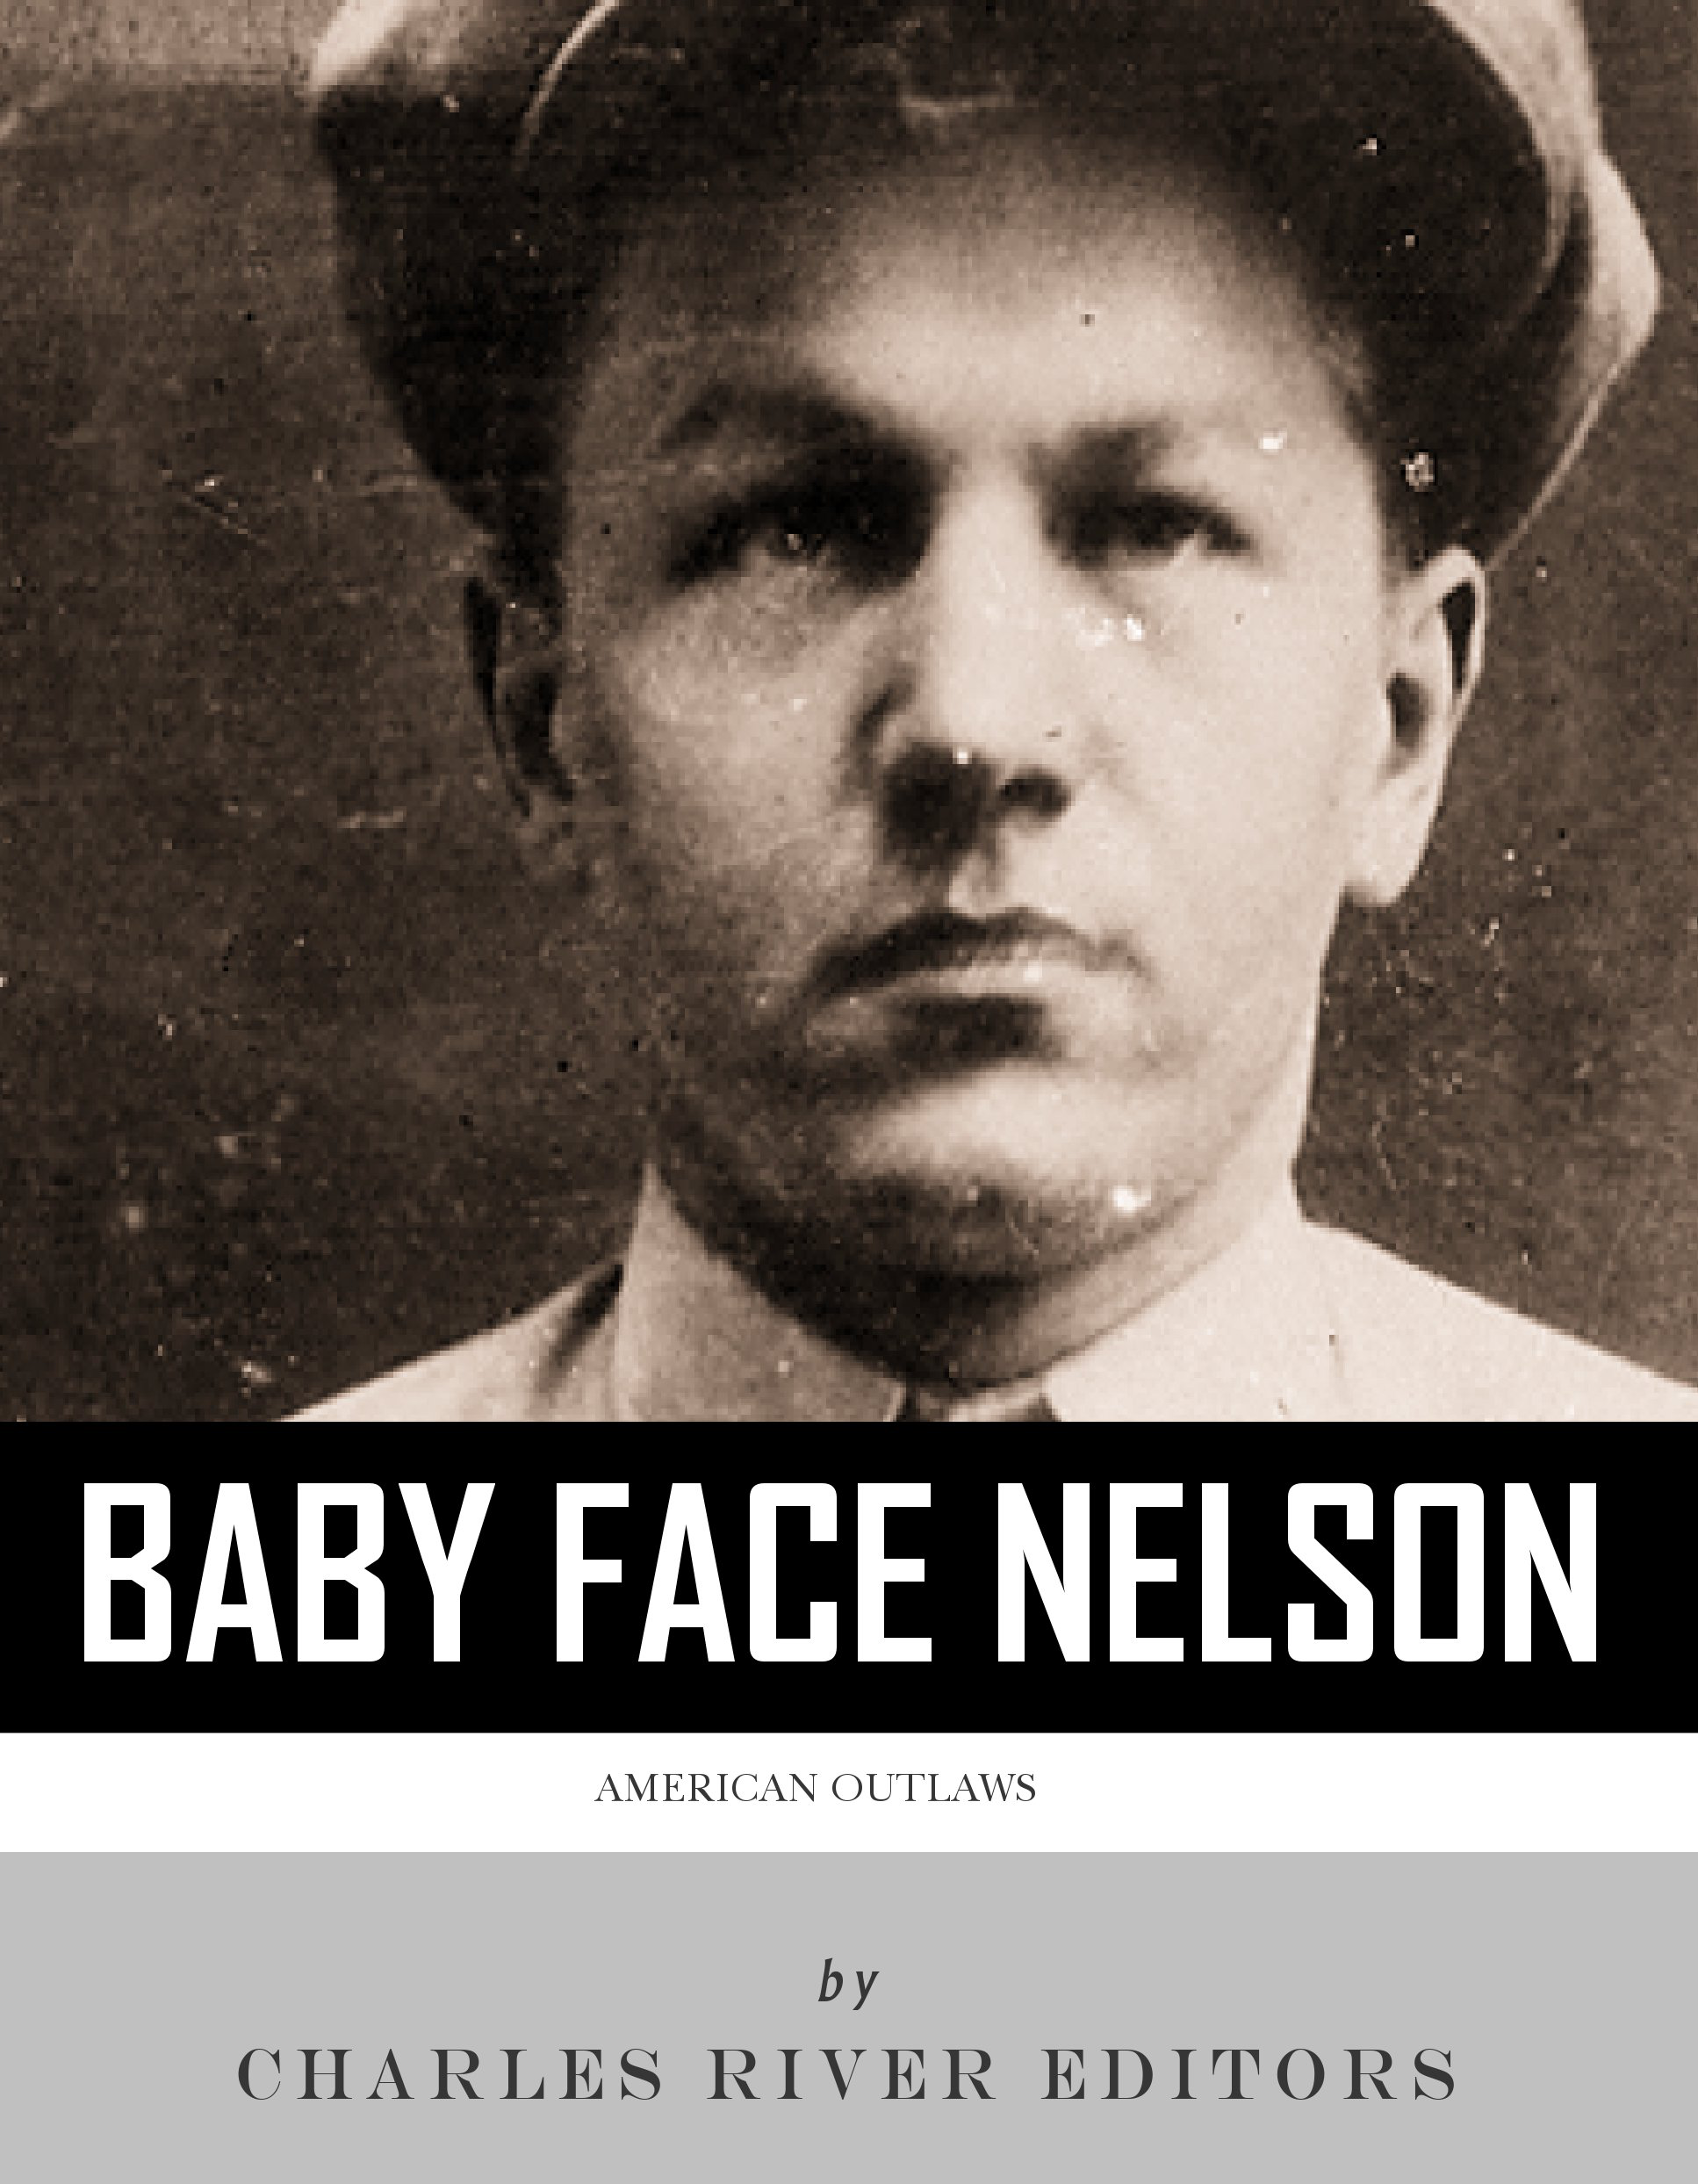 American Outlaws: The Life and Legacy of Baby Face Nelson By: Charles River Editors